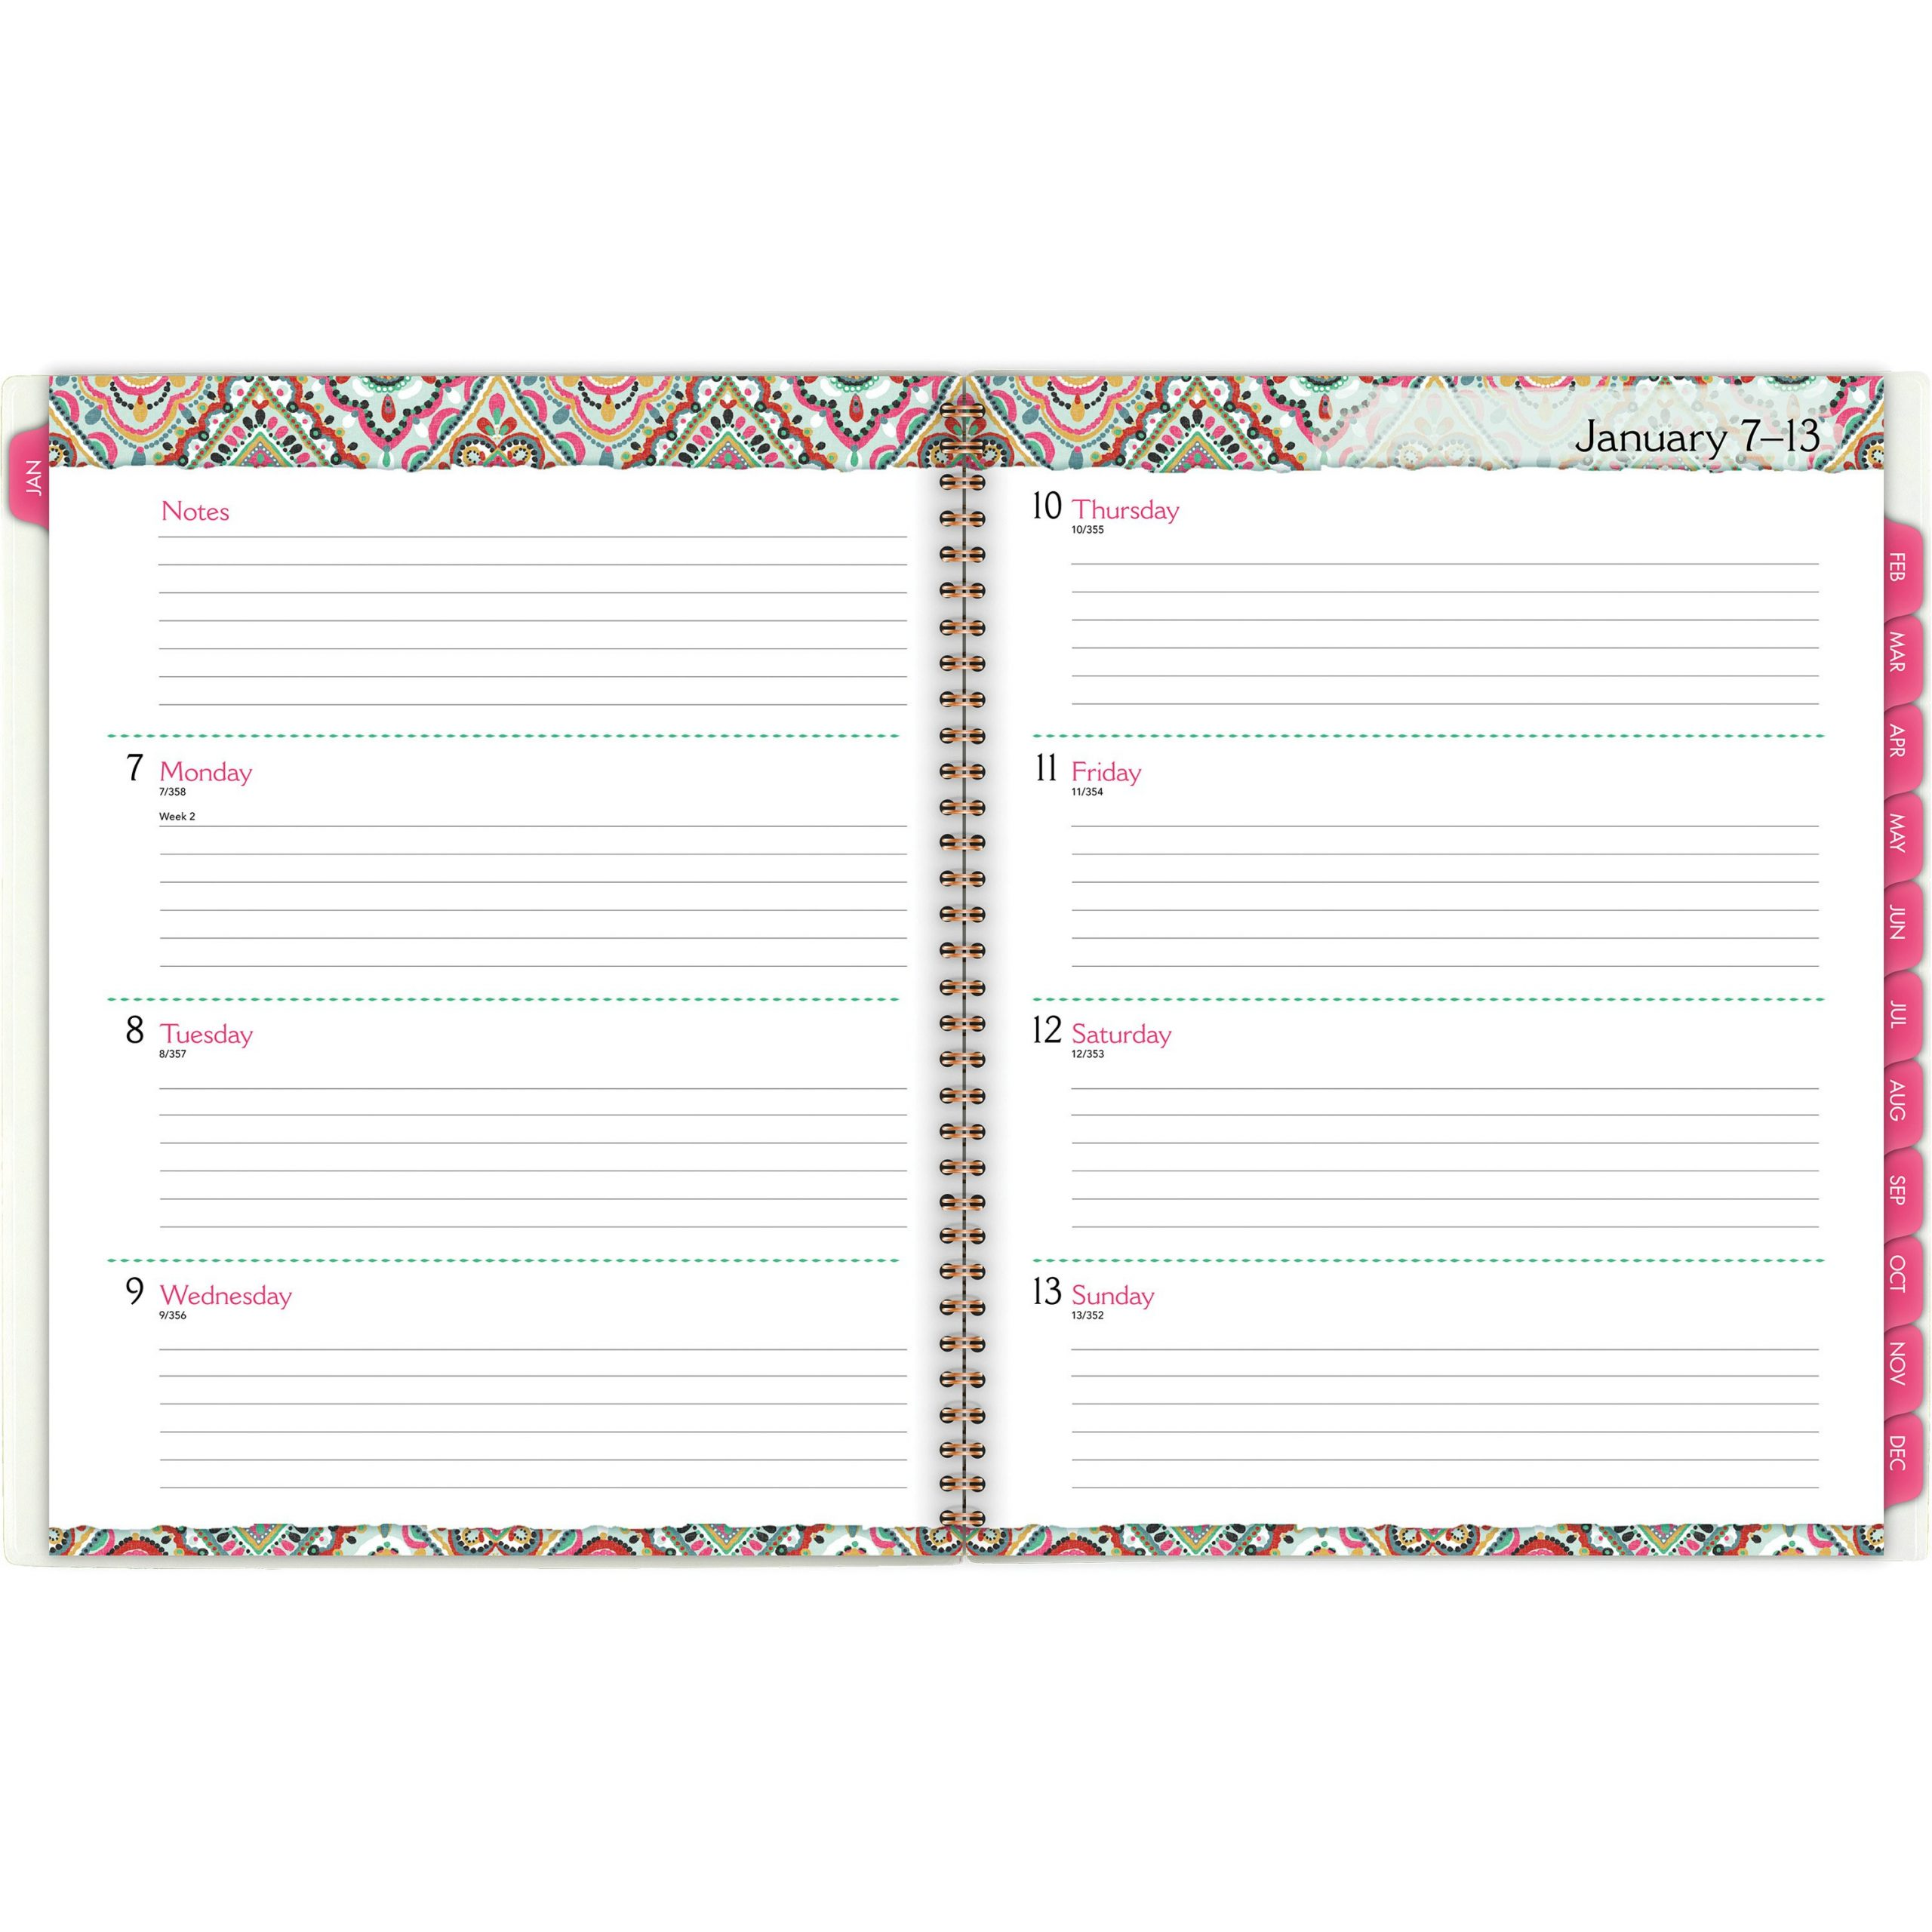 At A Glance Marrakesh Weekly Monthly Planner – Yes 8 1/2 11 Dayplanner Calendar